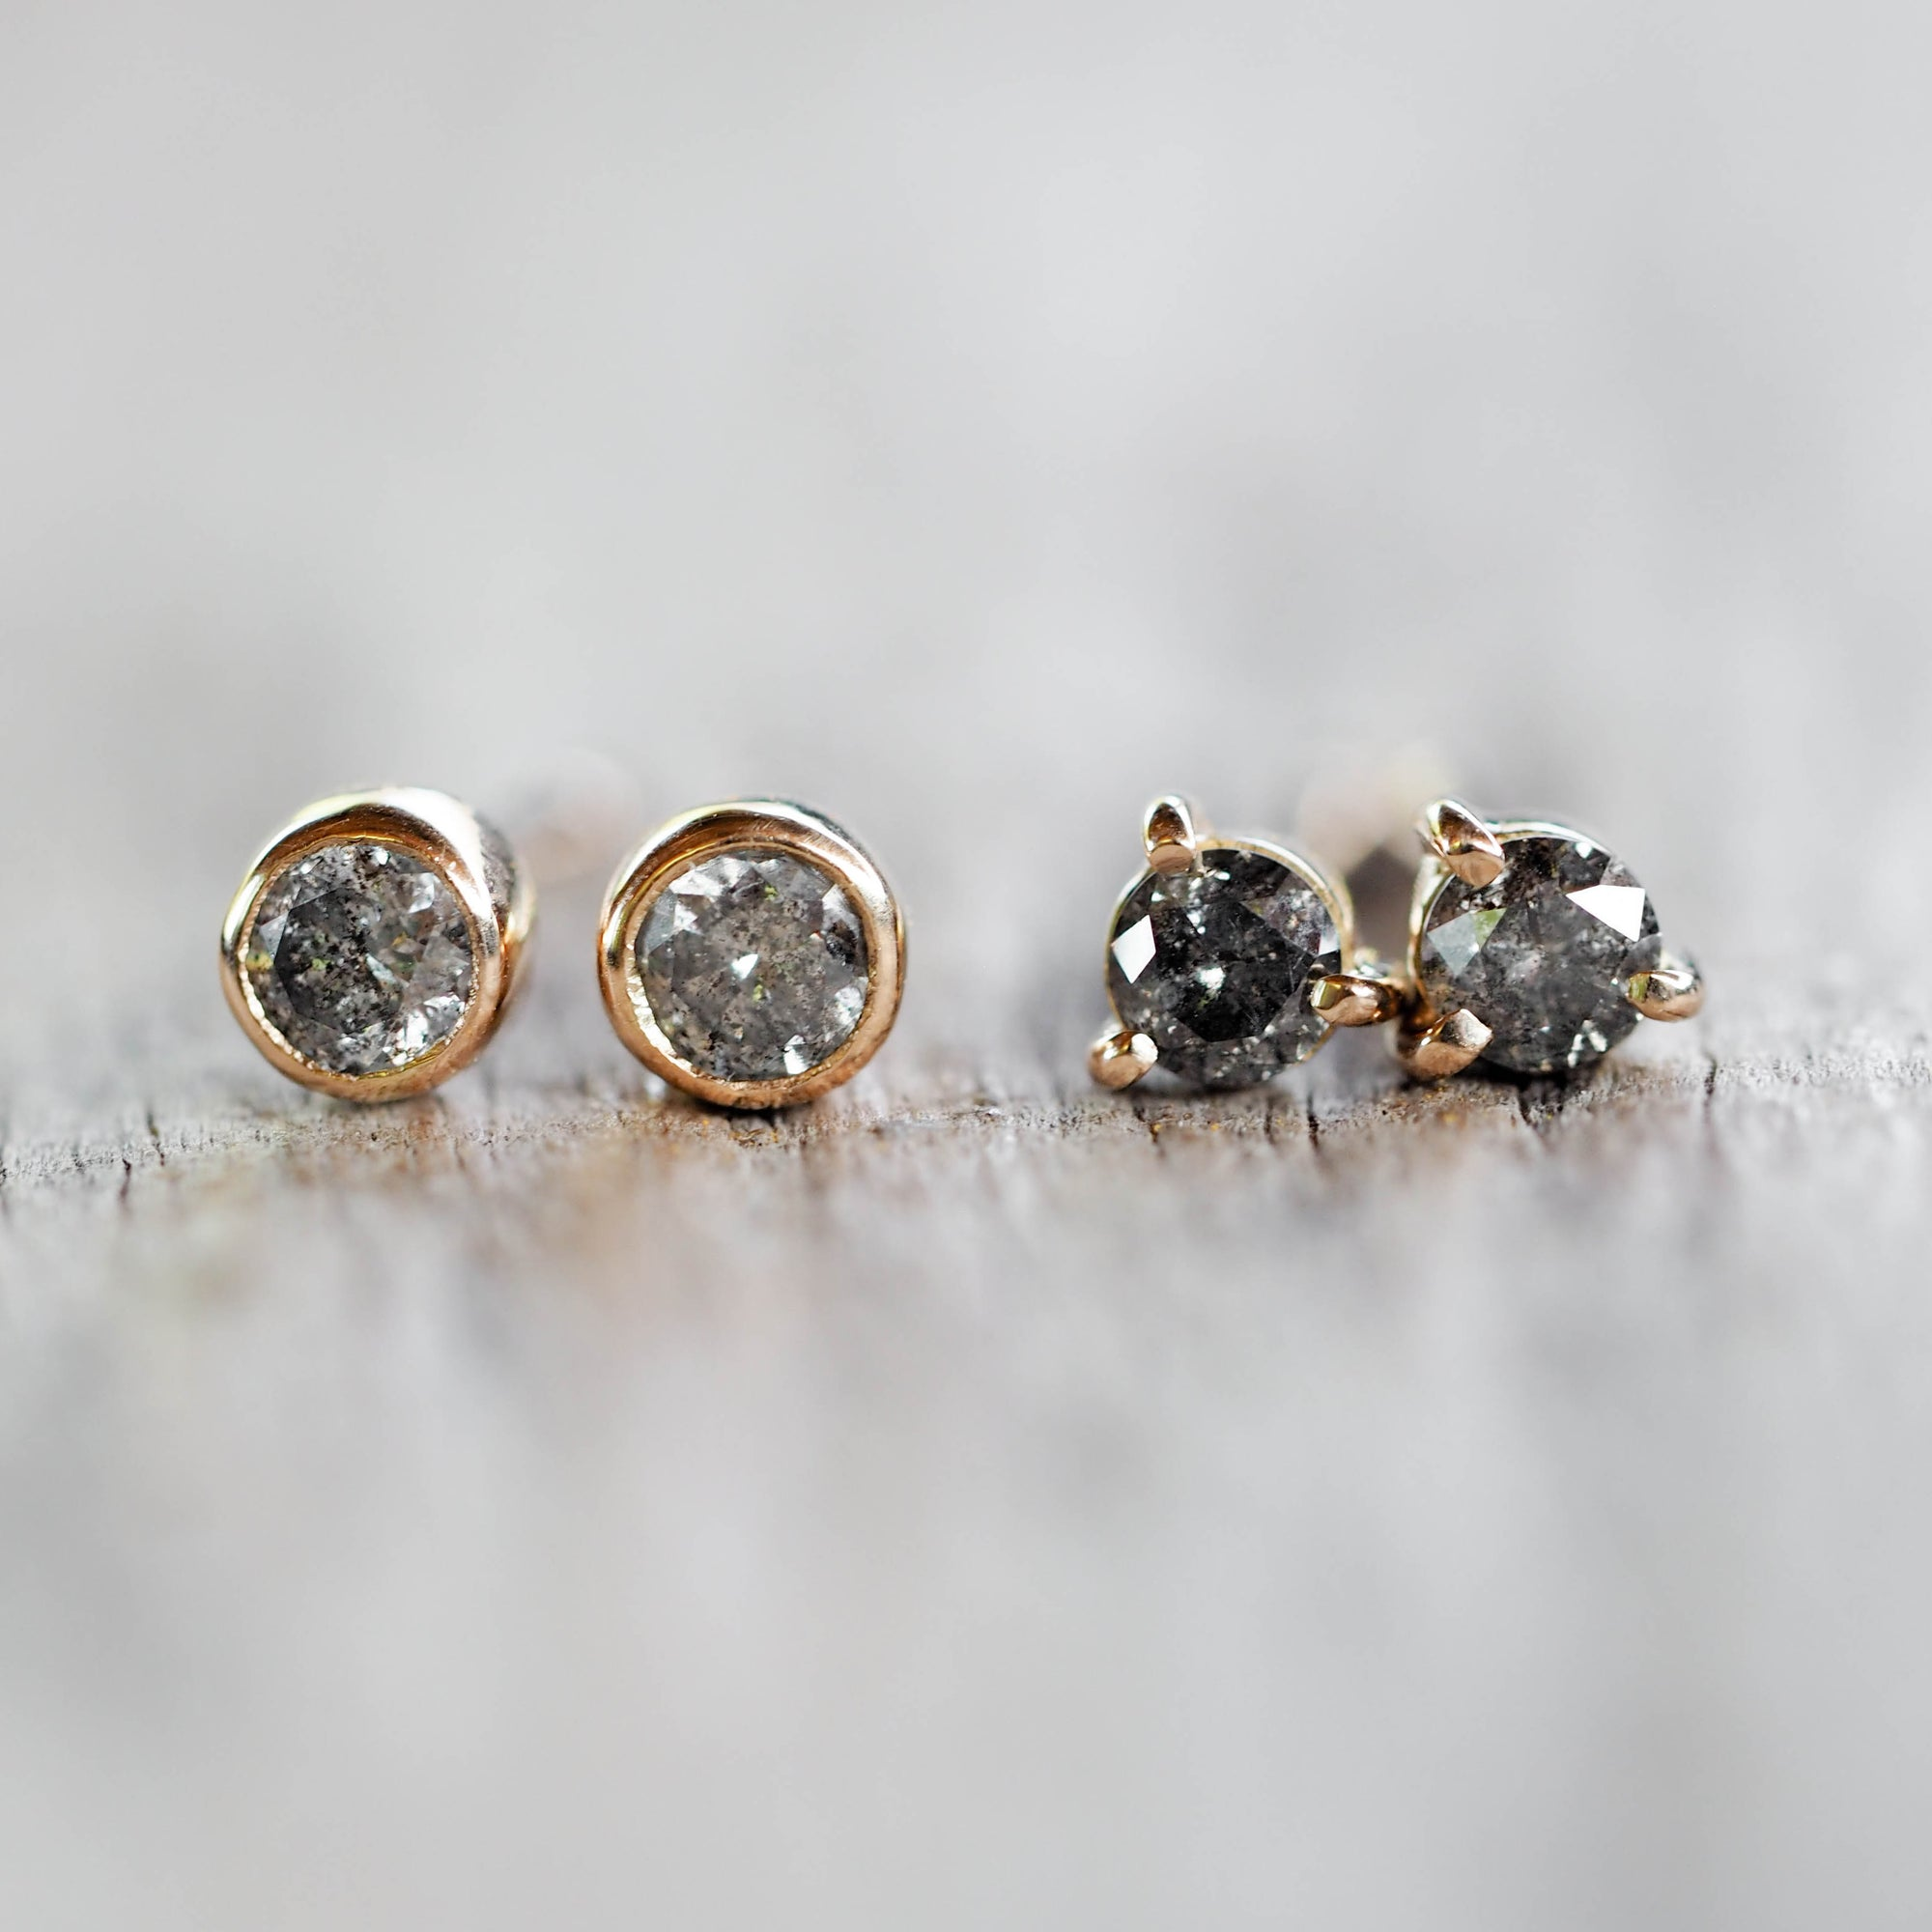 AA WEIGHT Round Diamond Earrings - Gardens of the Sun Jewelry